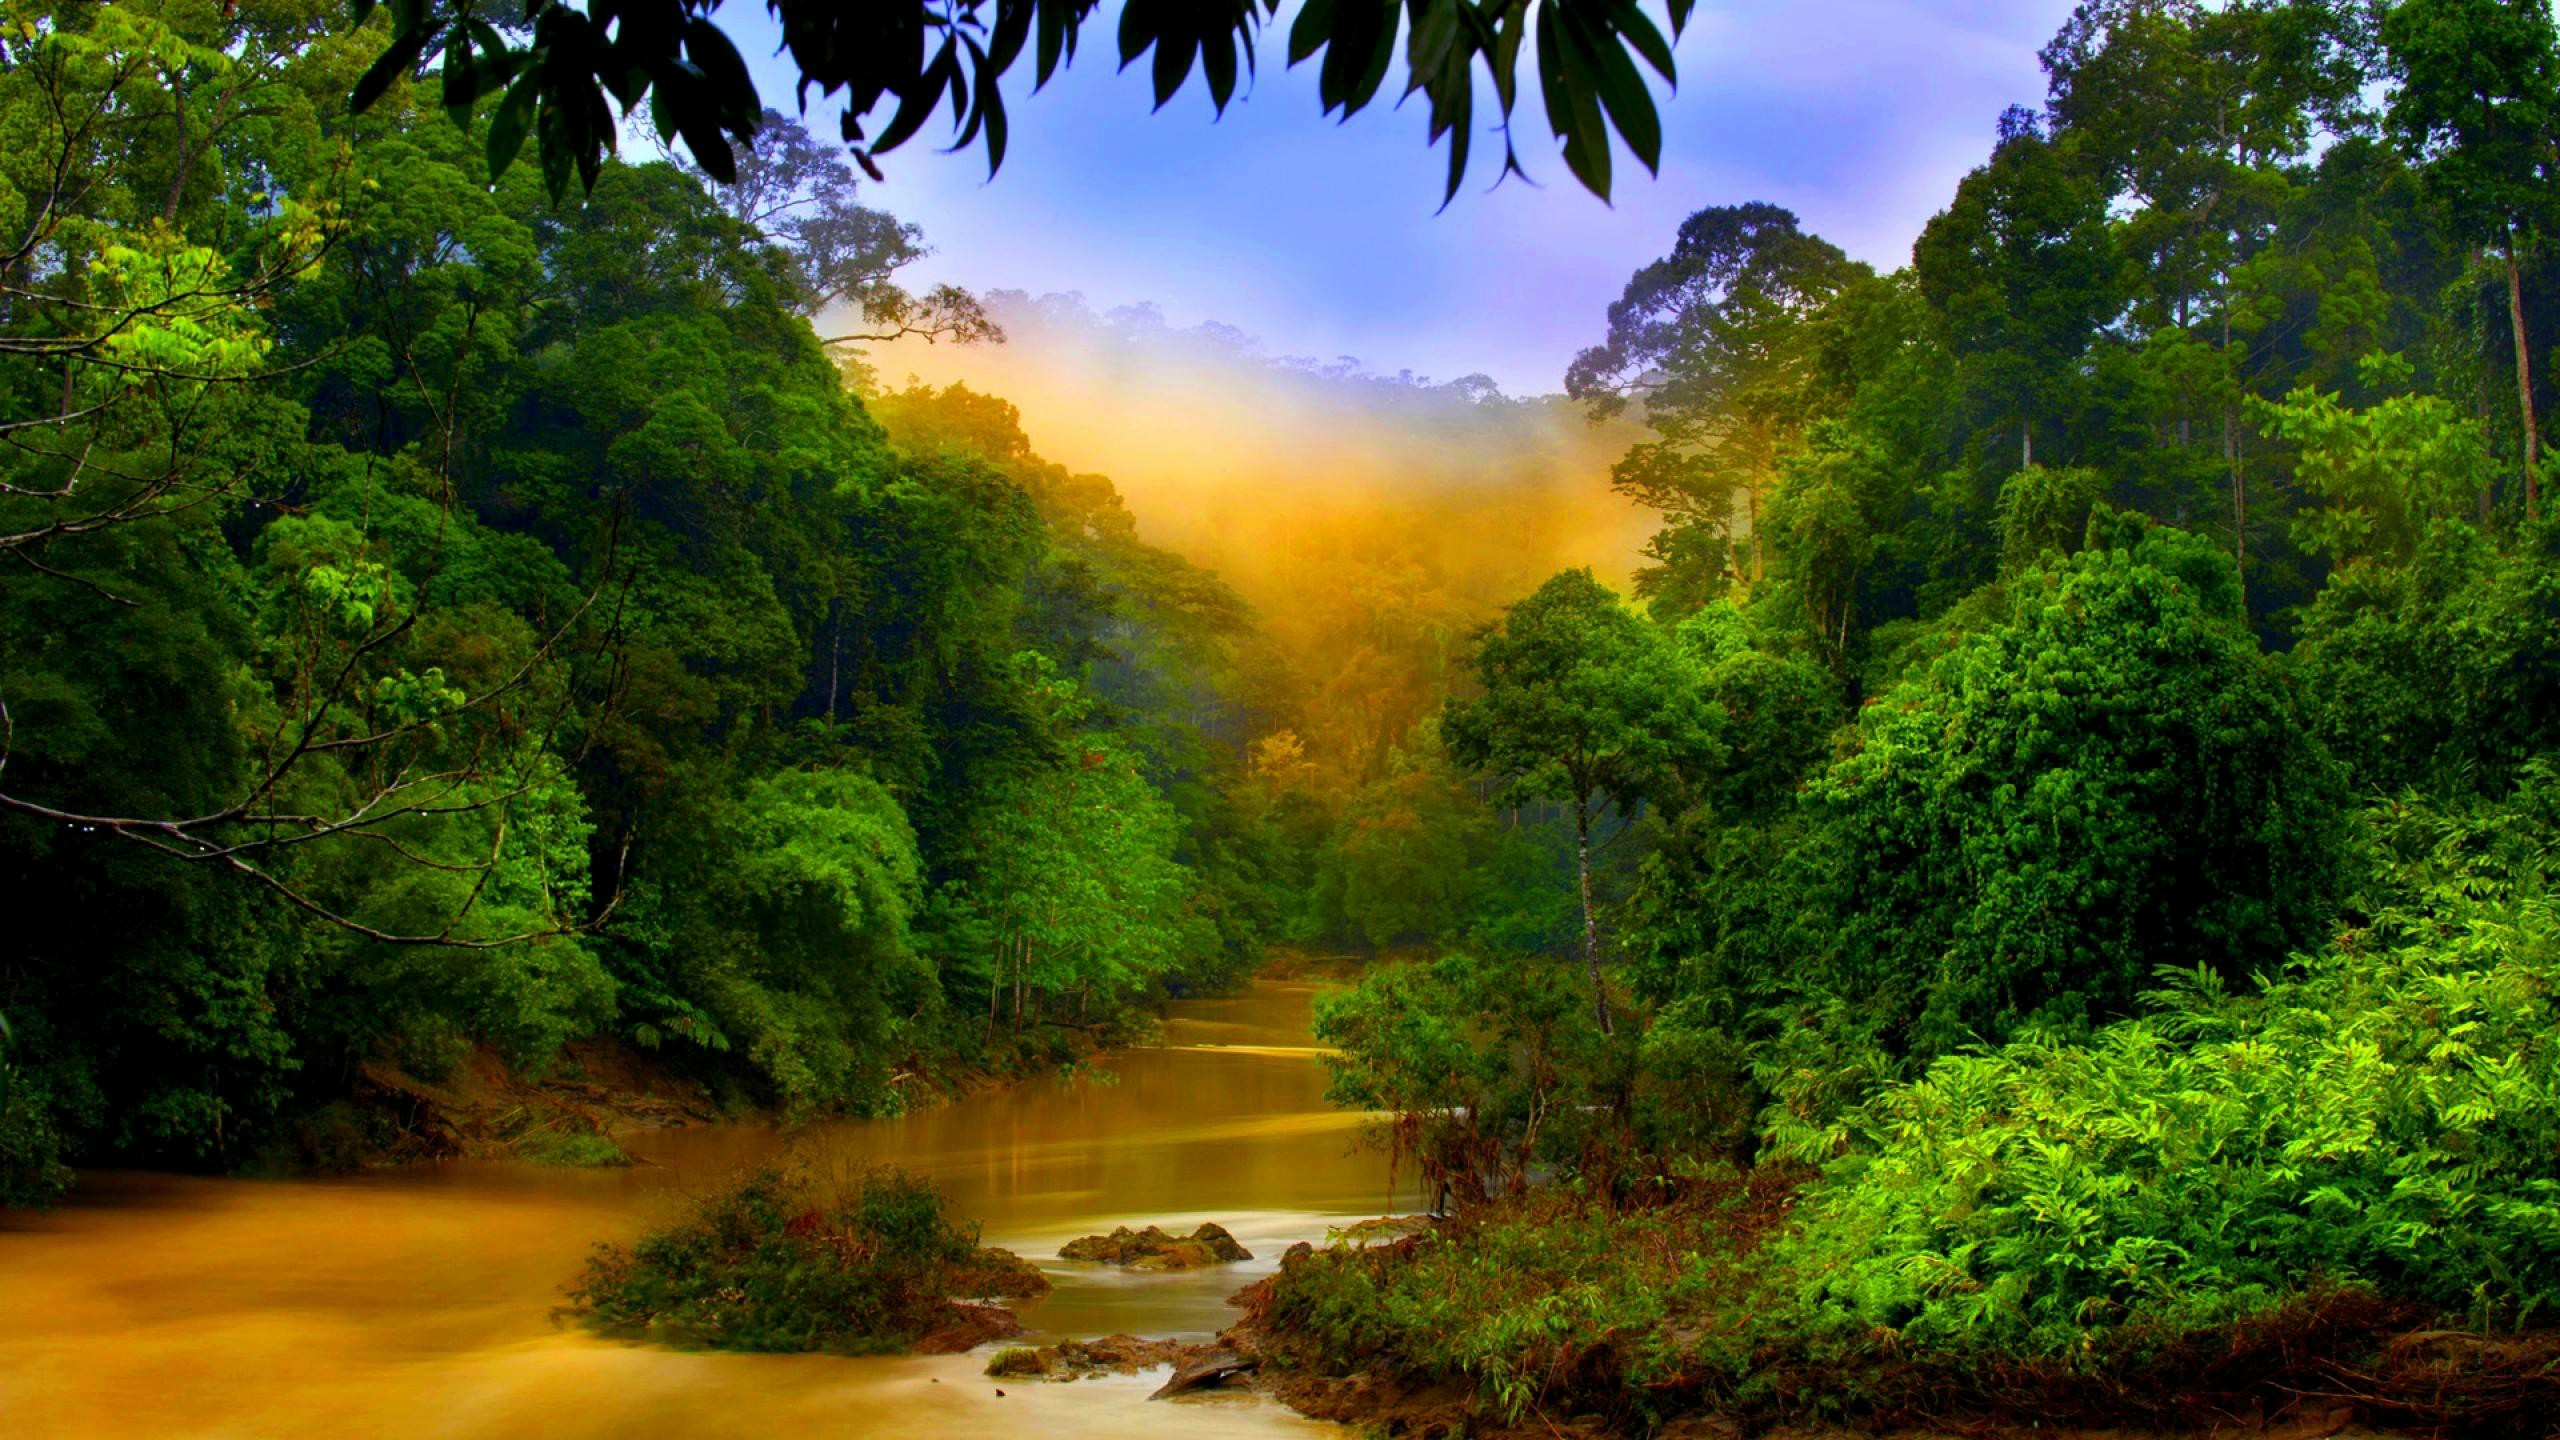 Rain Forest River Valley Mist Habitat Asia Ultra Hd